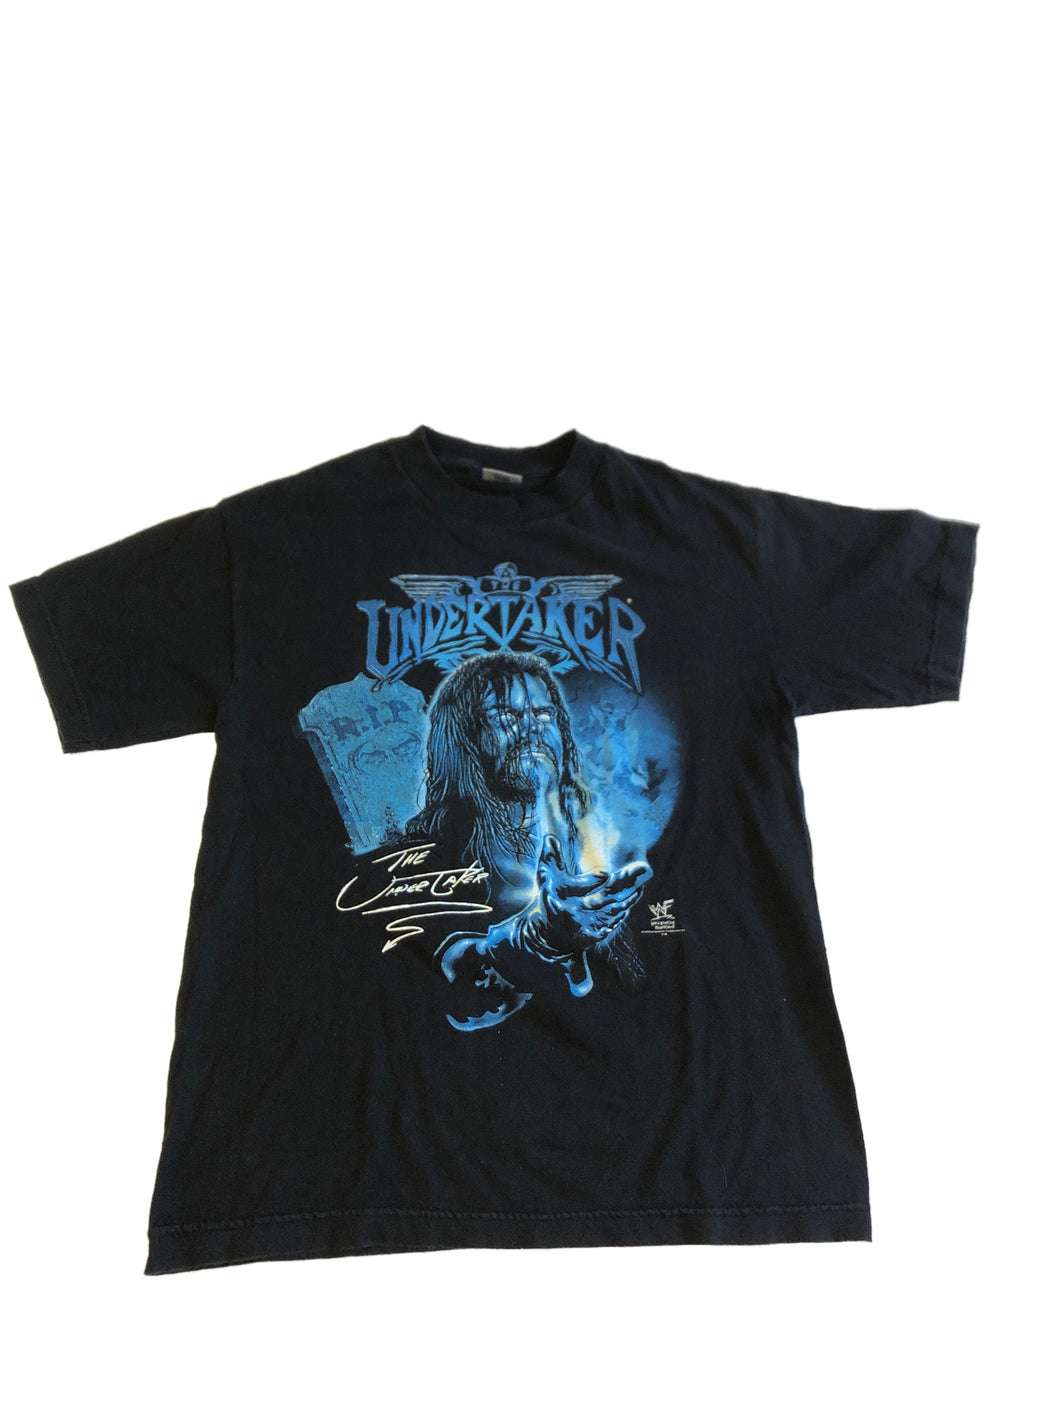 Undertaker Lord of Darkness Tee